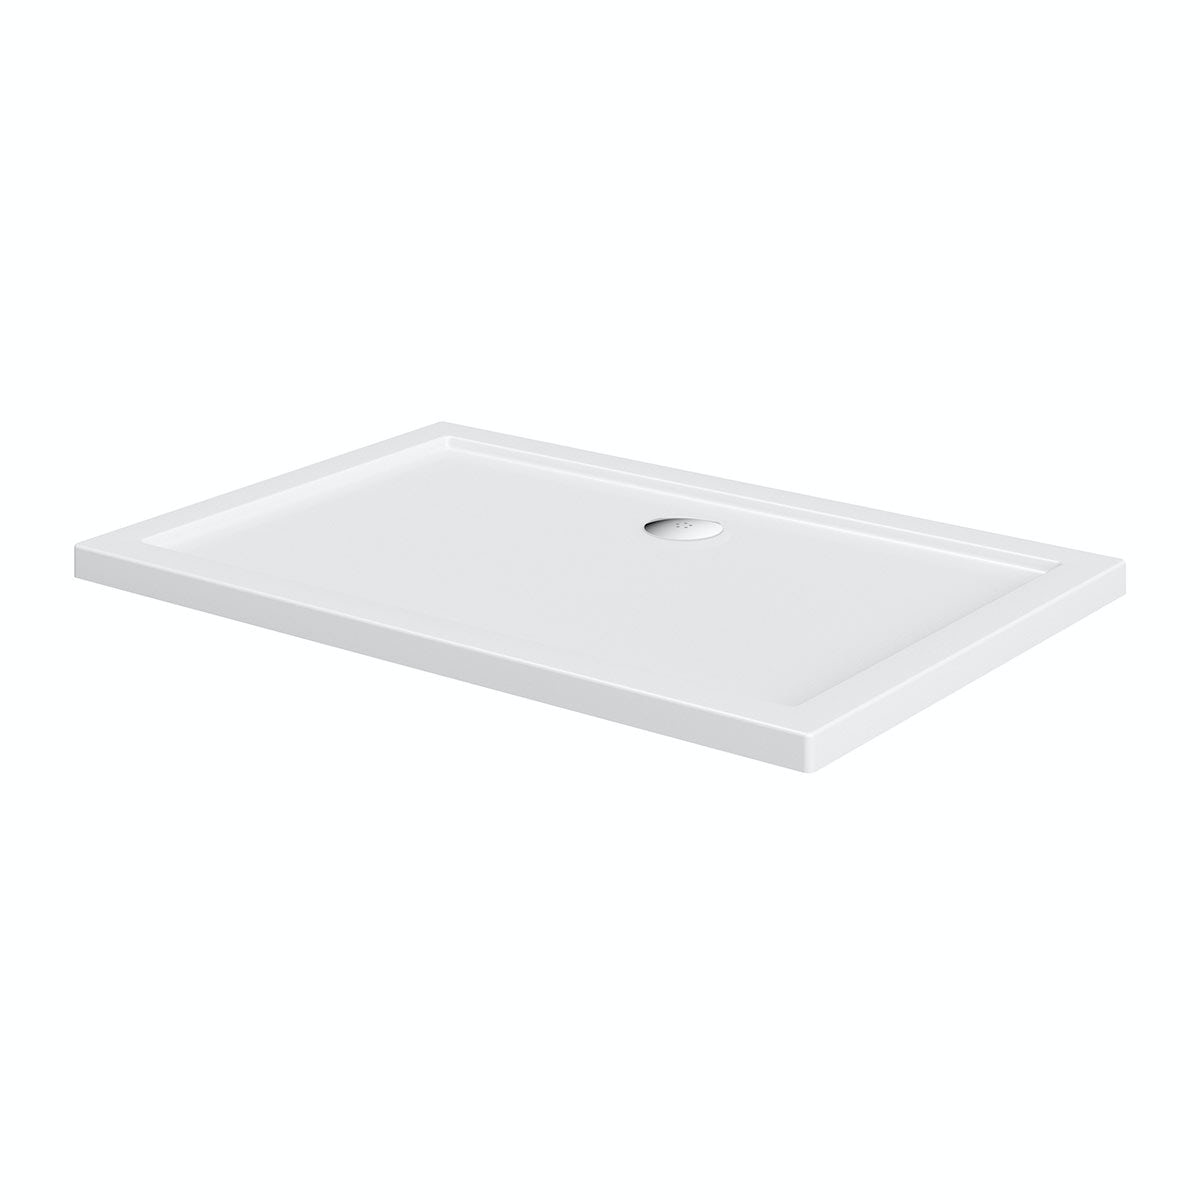 Orchard Rectangular stone shower tray 1200 x 800